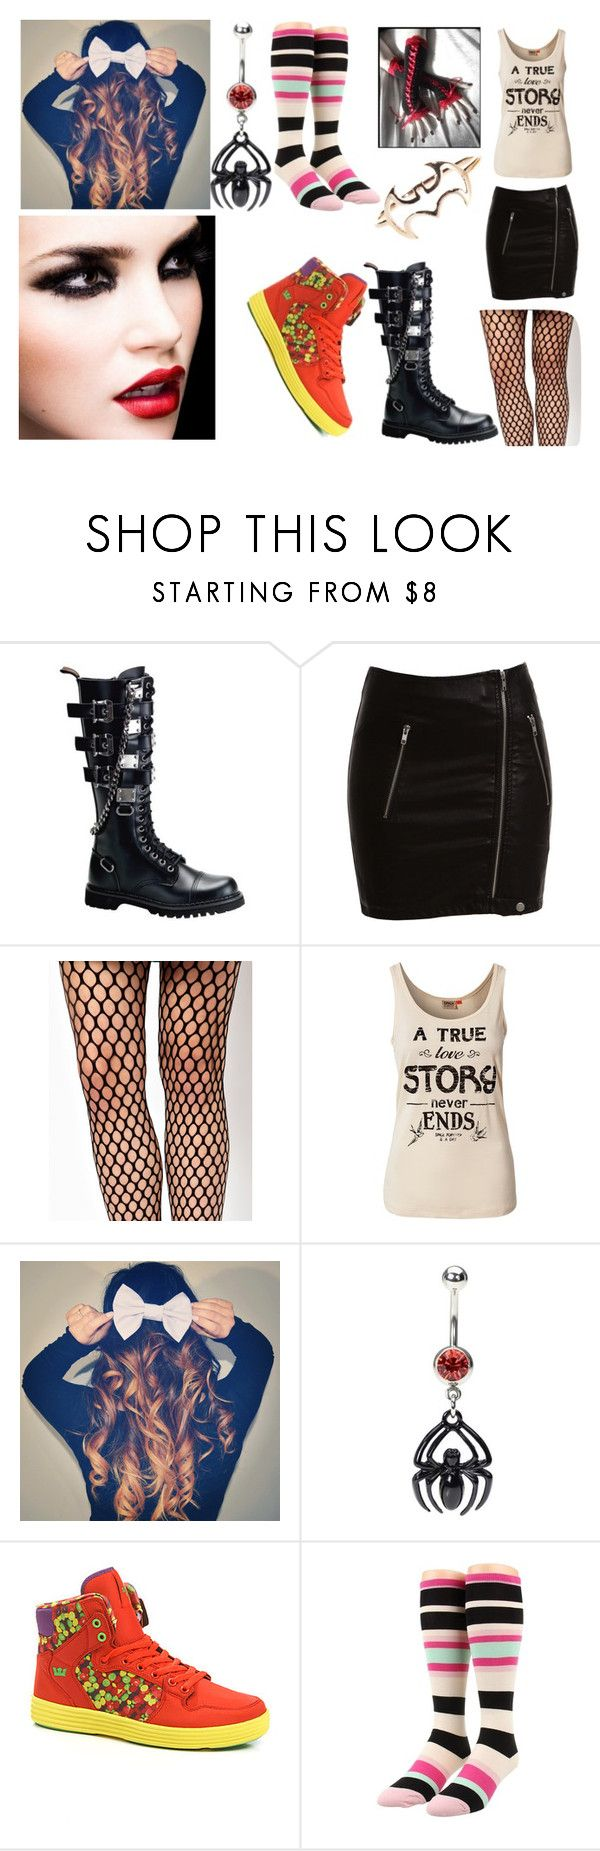 """Ashley's Try Outs"" by emoboobunny ❤ liked on Polyvore featuring Bardot, Wolford, ONLY, Steiner, Supra and Kate Spade"